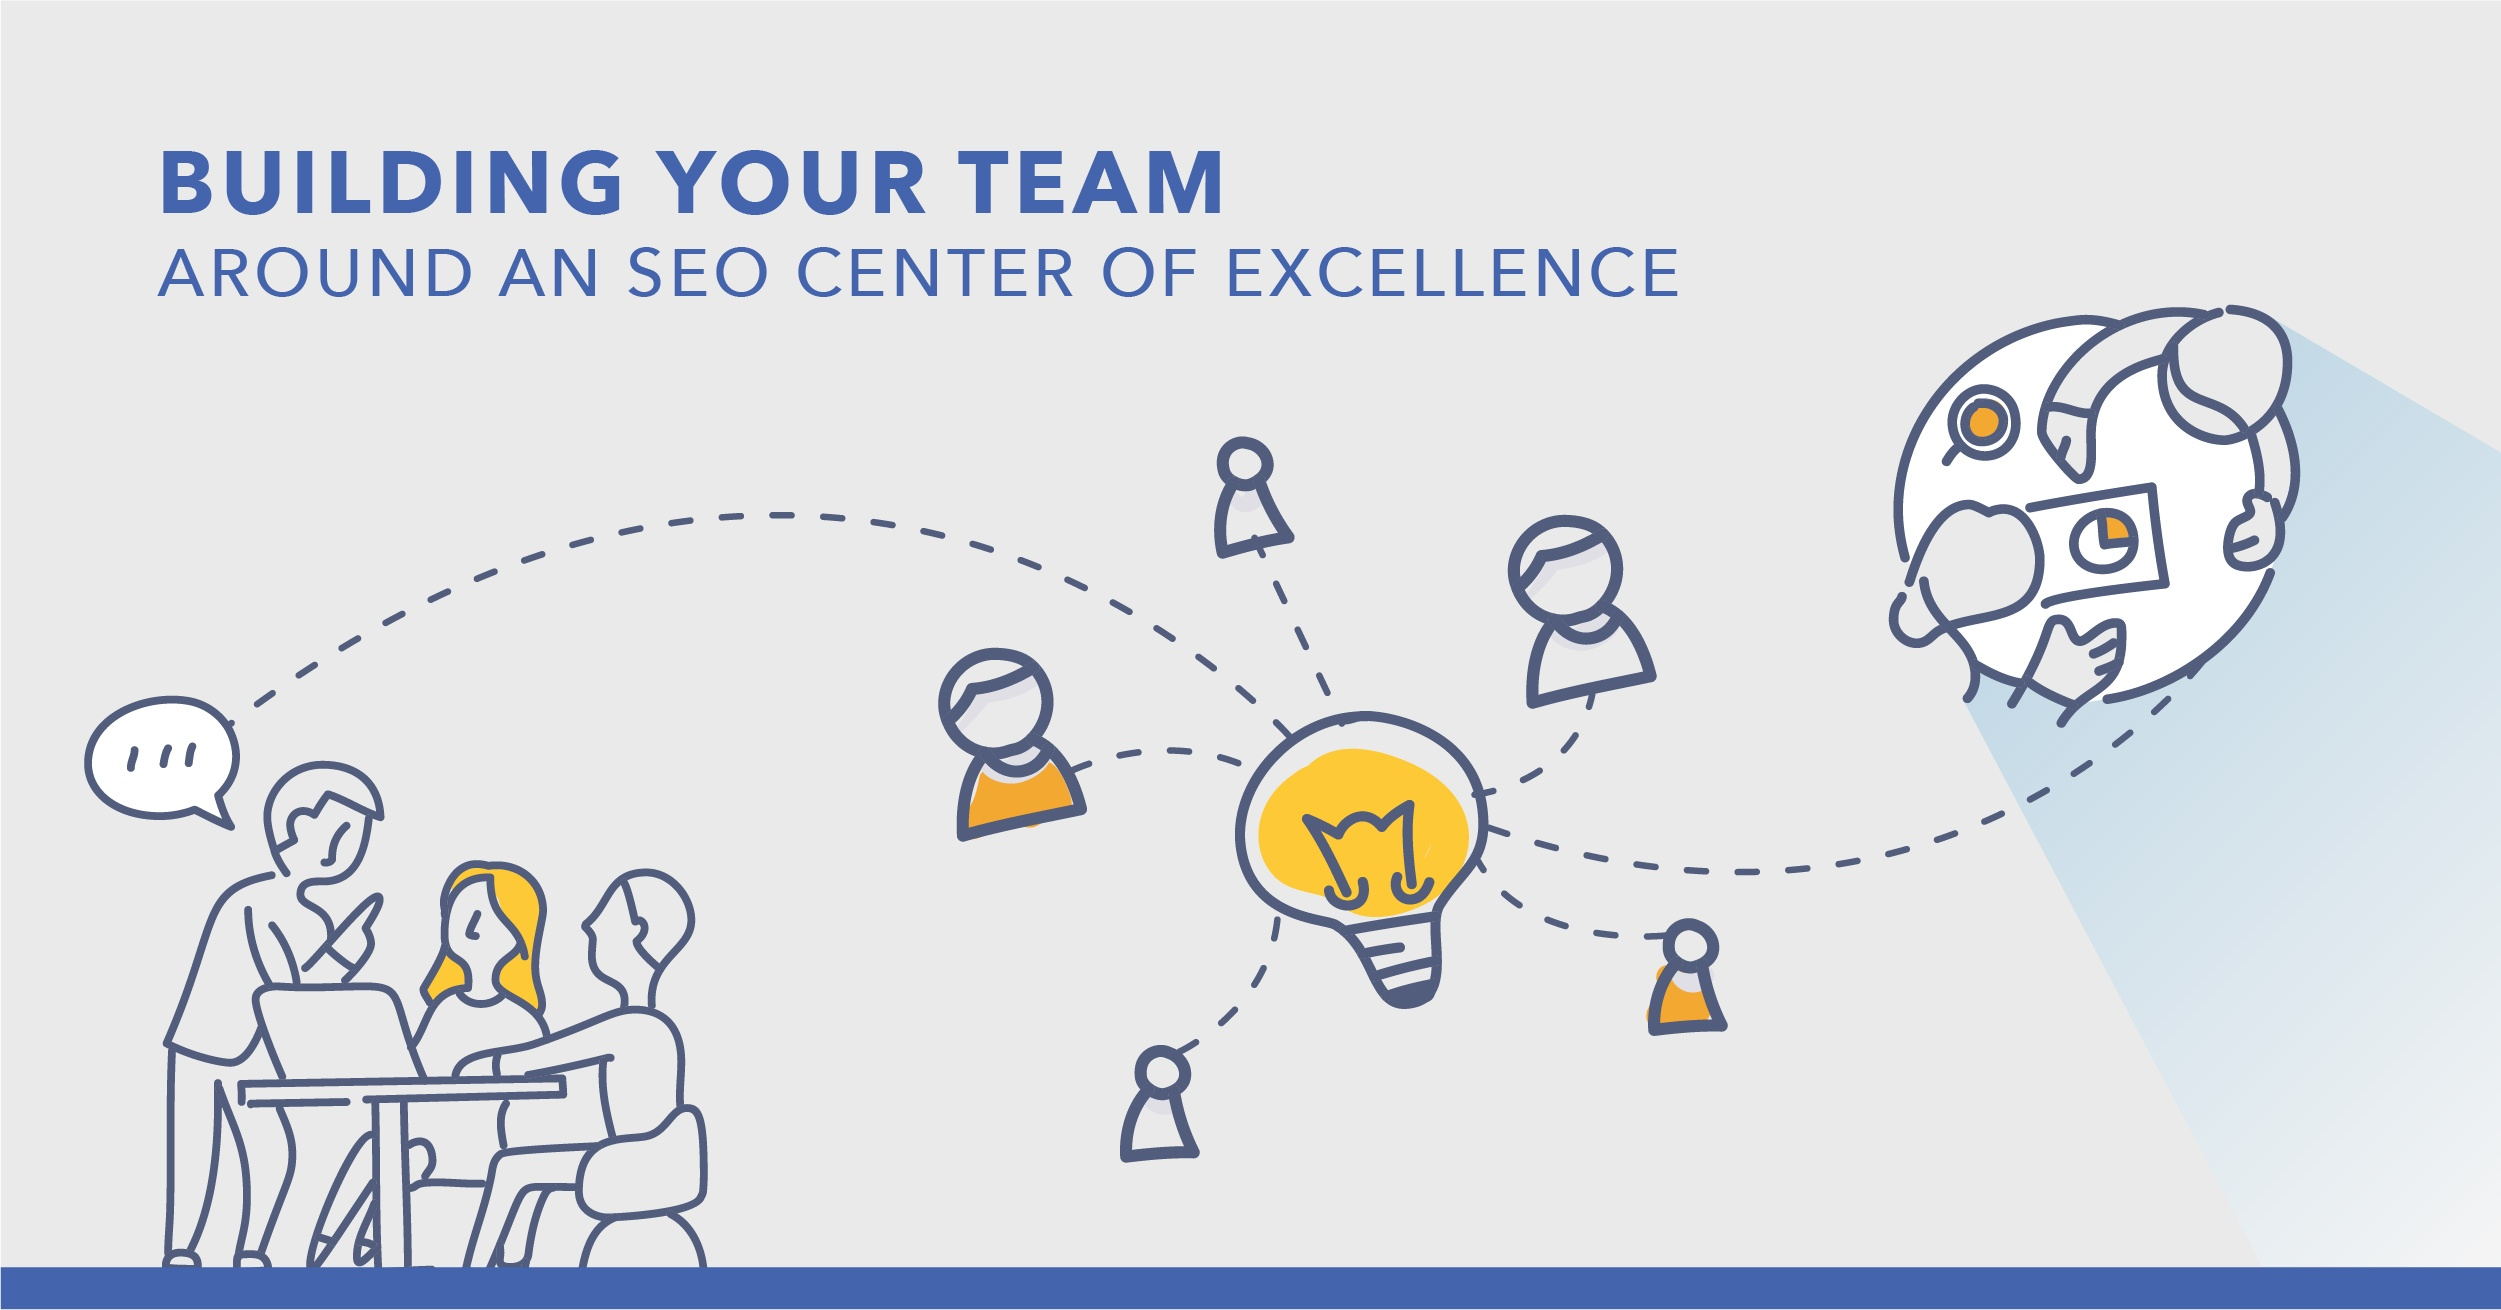 How to Build Your Team Around an SEO Center of Excellence